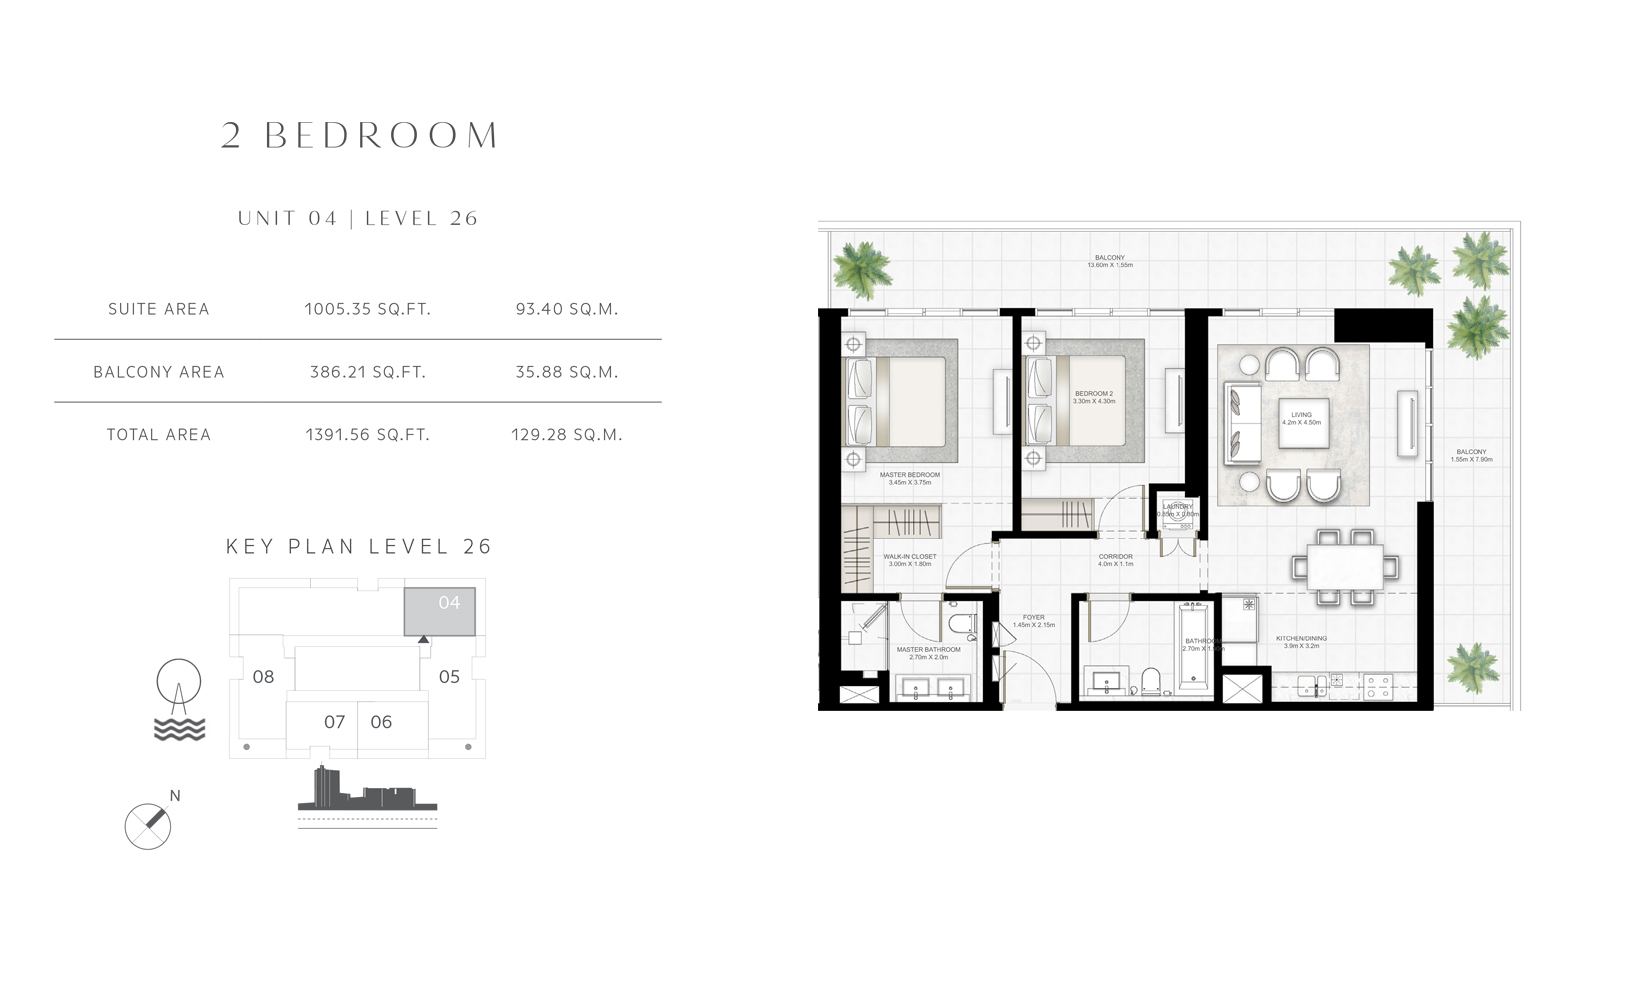 2 Bedroom Unit 04 Level 26 Size 1391.56 sq.ft